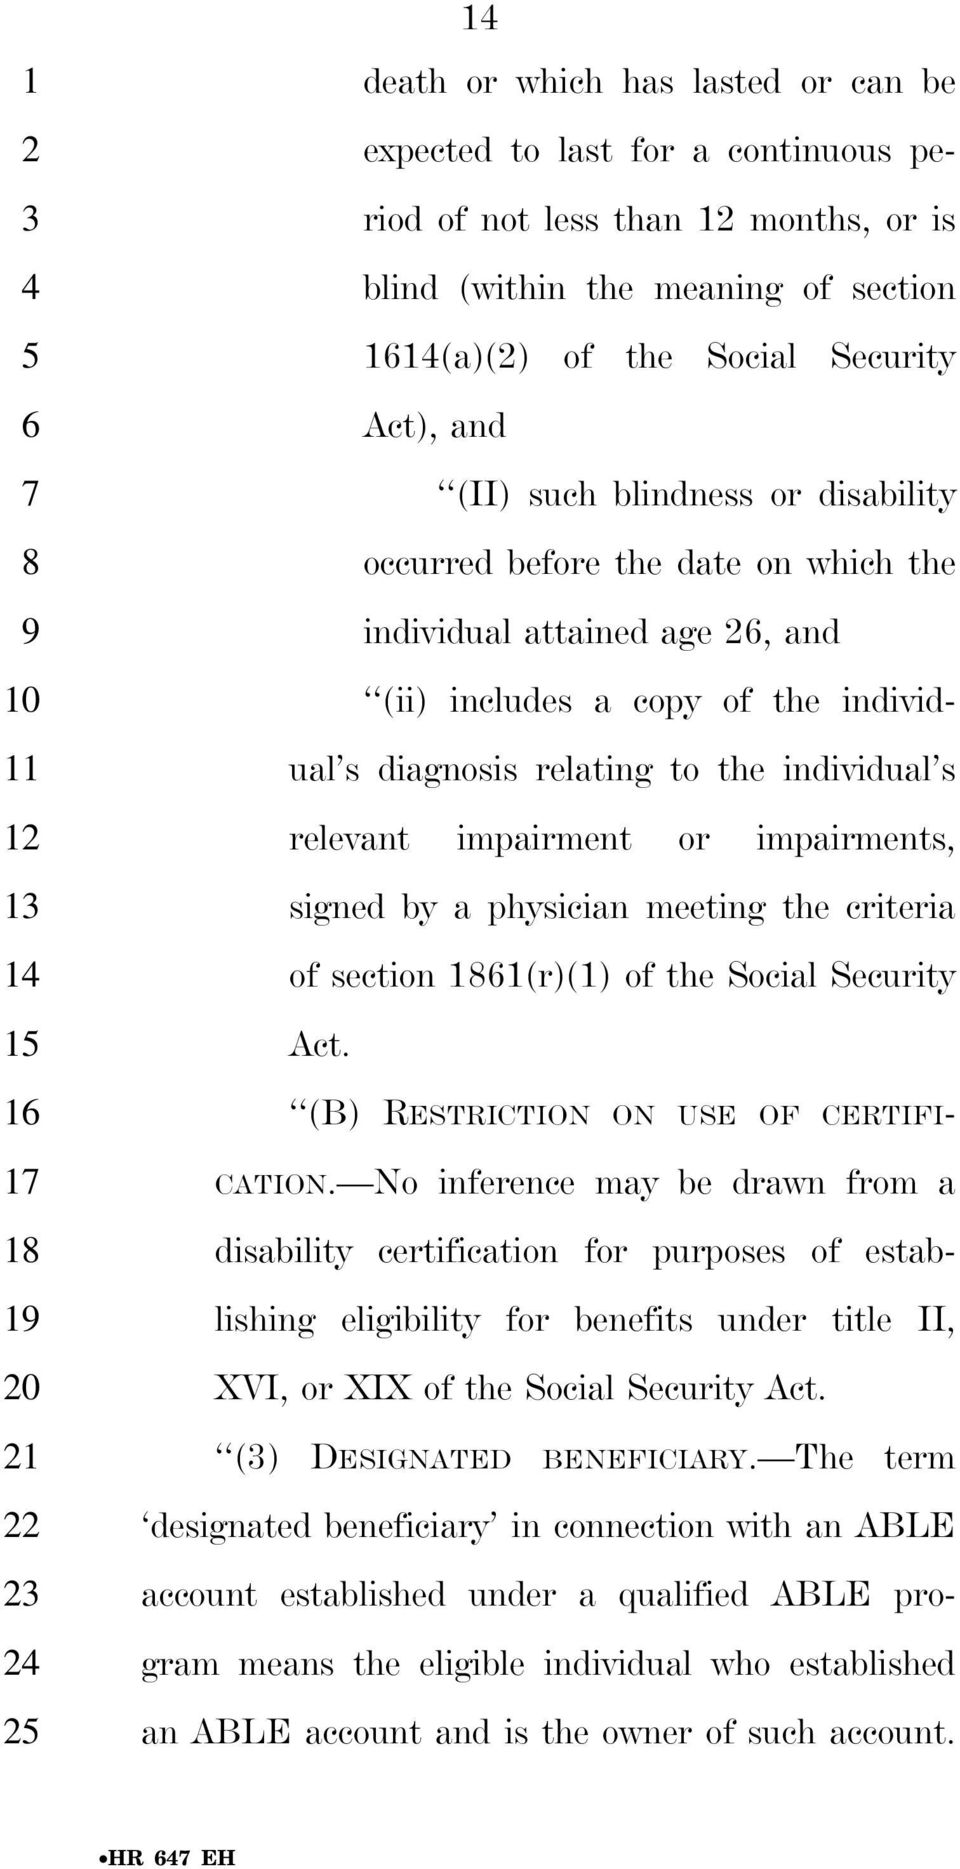 impairment or impairments, signed by a physician meeting the criteria of section 11(r)(1) of the Social Security Act. (B) RESTRICTION ON USE OF CERTIFI- CATION.